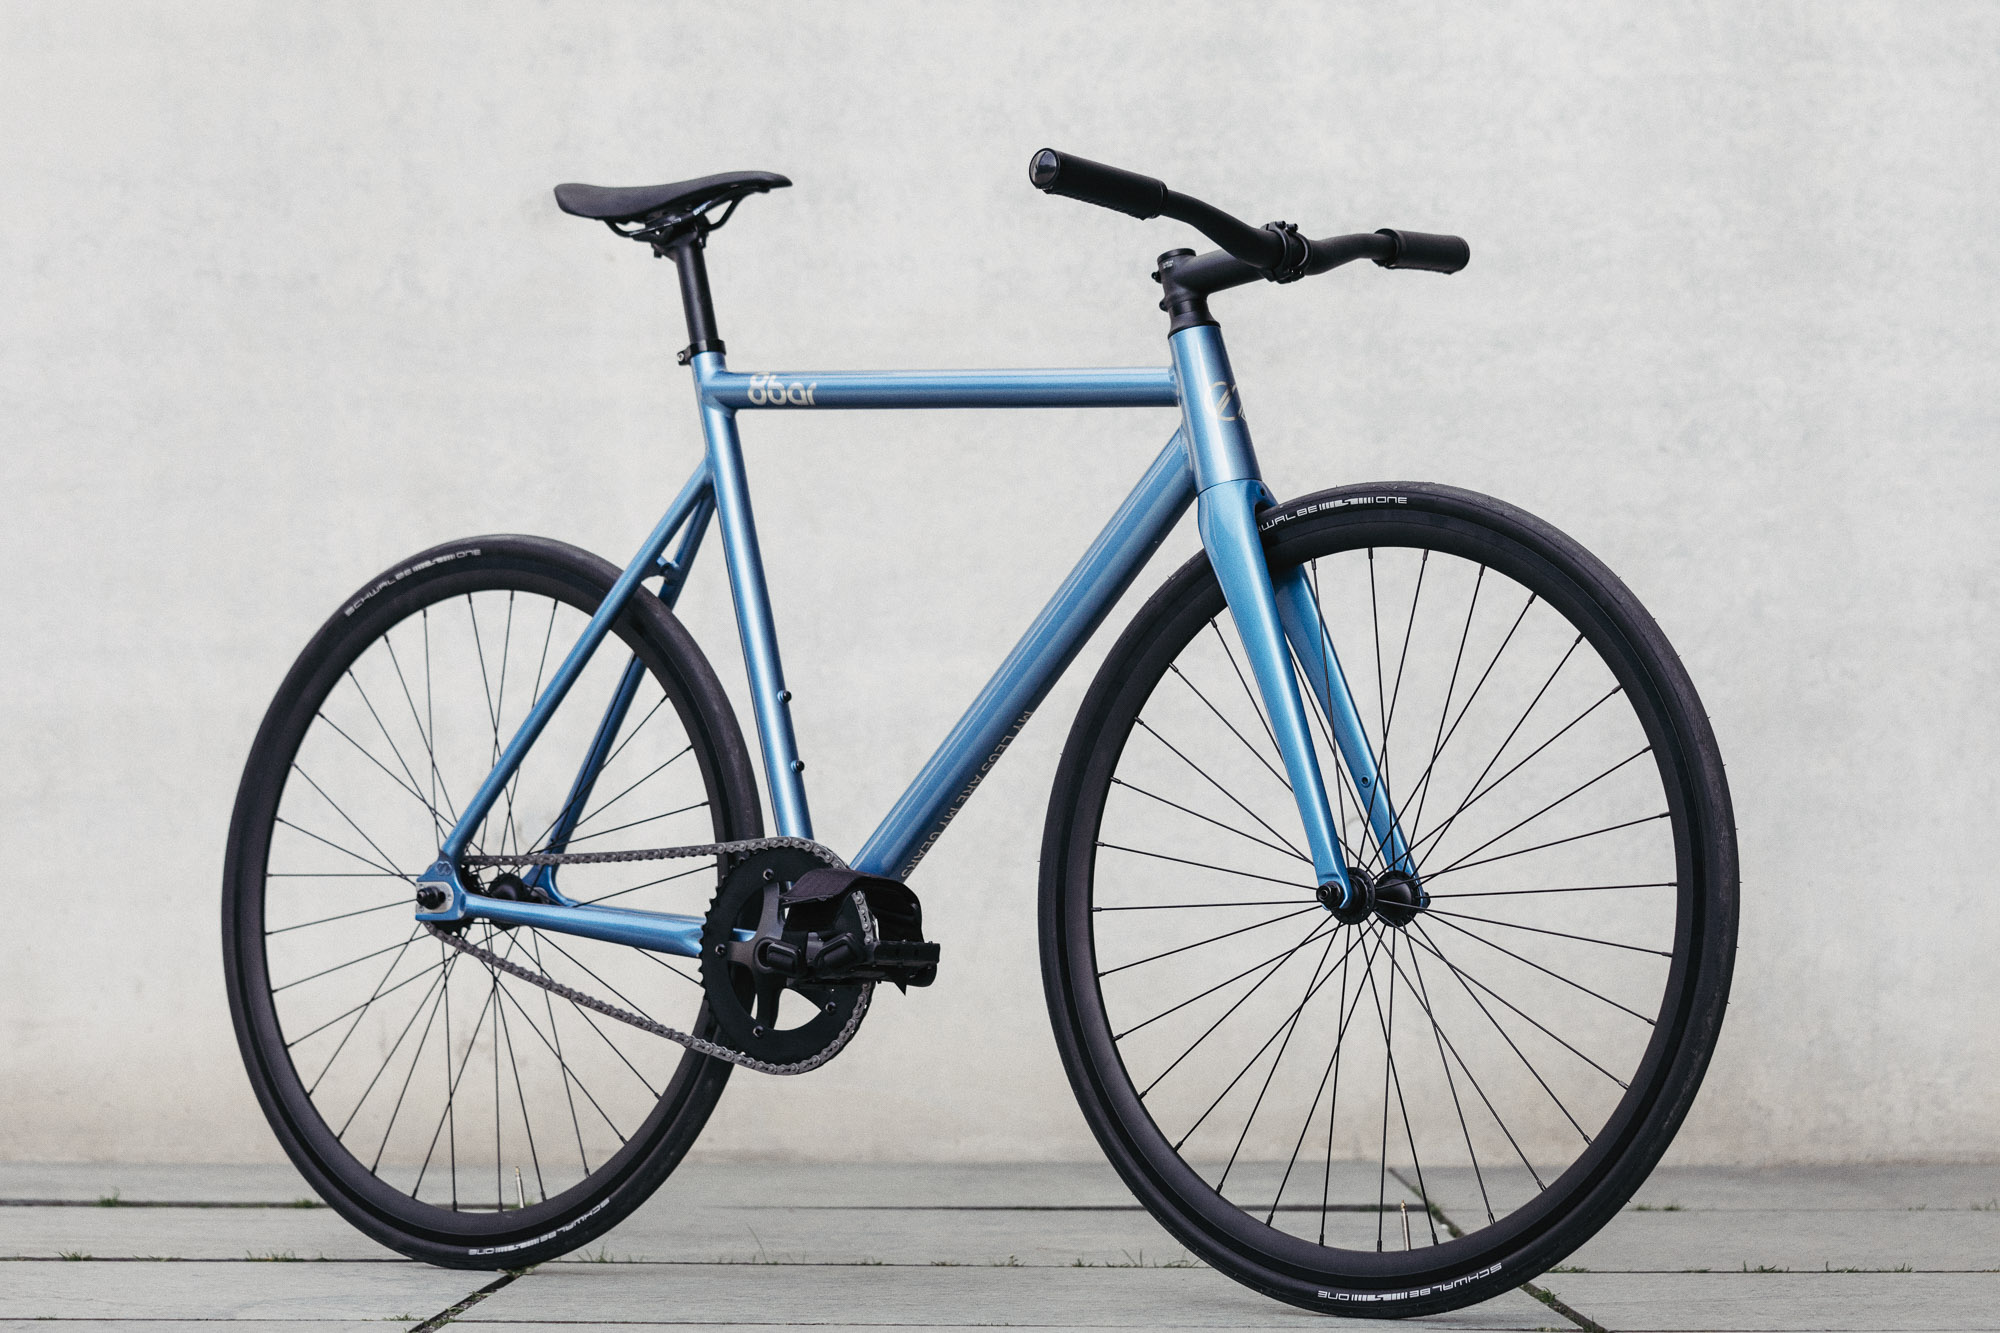 8bar complete bike krzberg v7 blue fixie fixed gear-lr-24